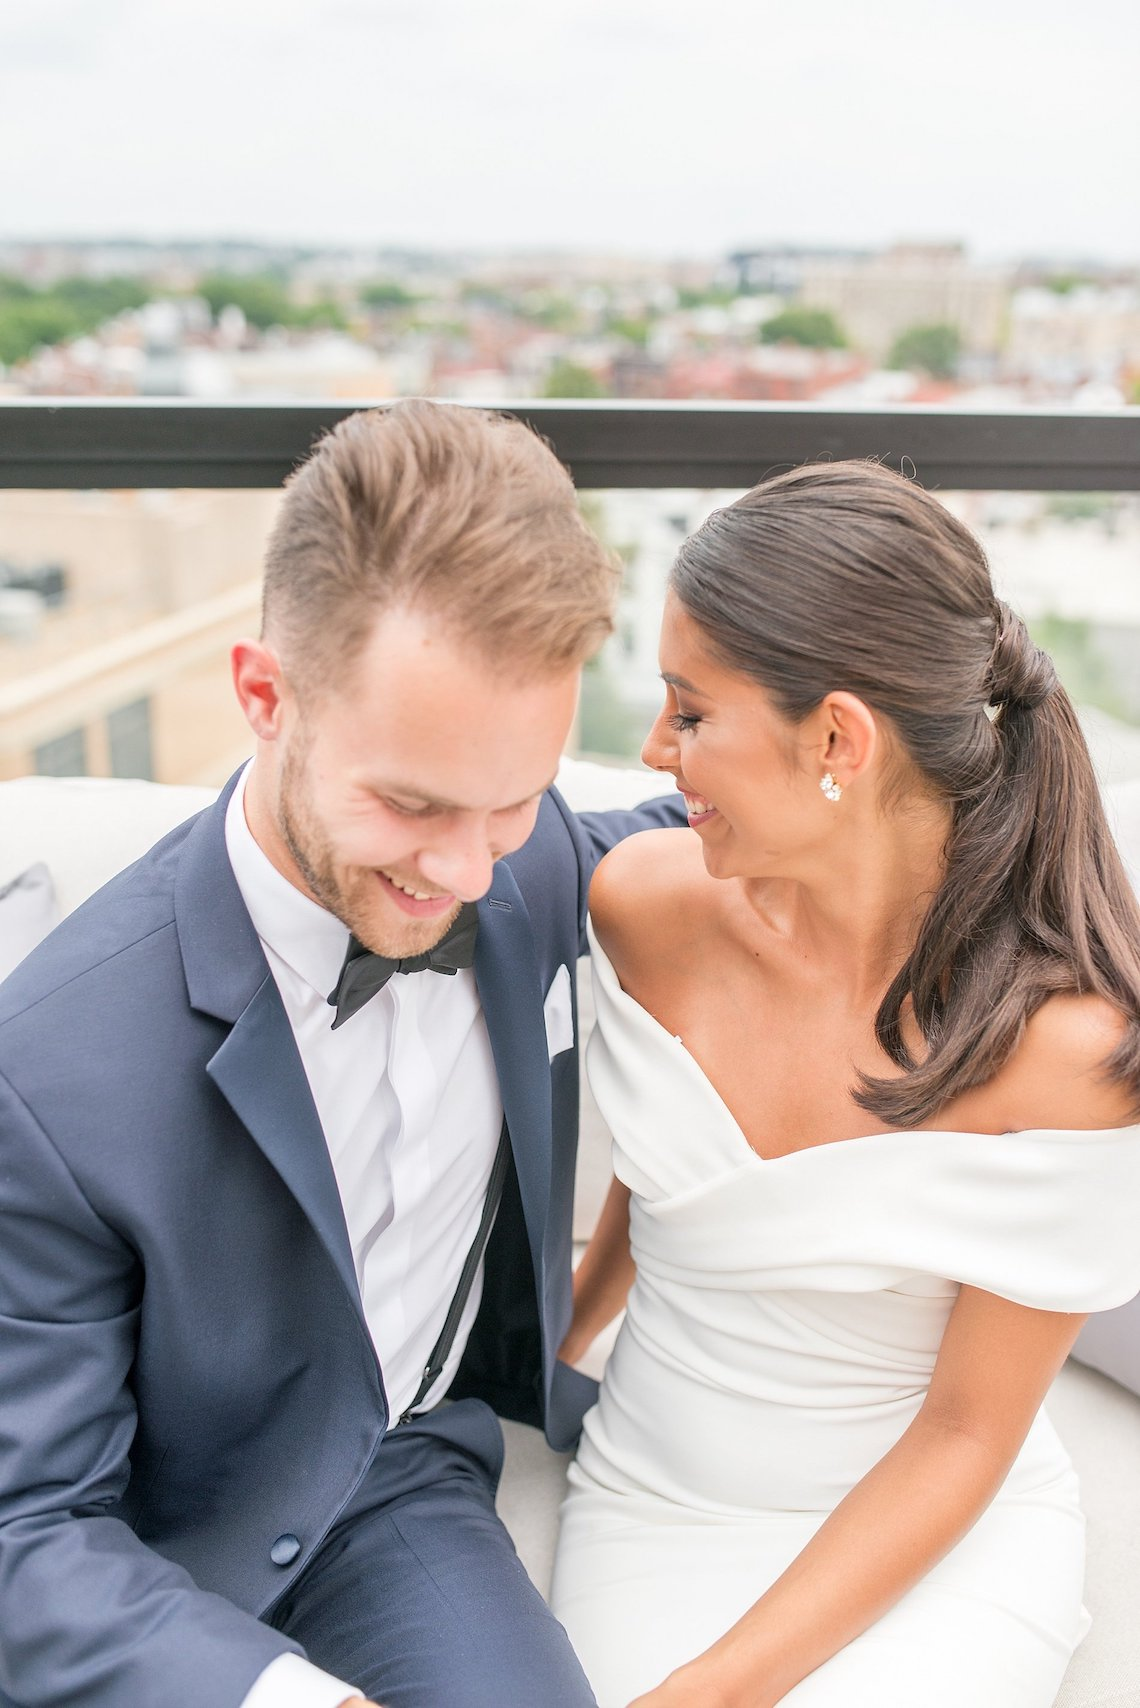 Classy Modern Rooftop Wedding Inspiration | Anna + Mateo Photography 18